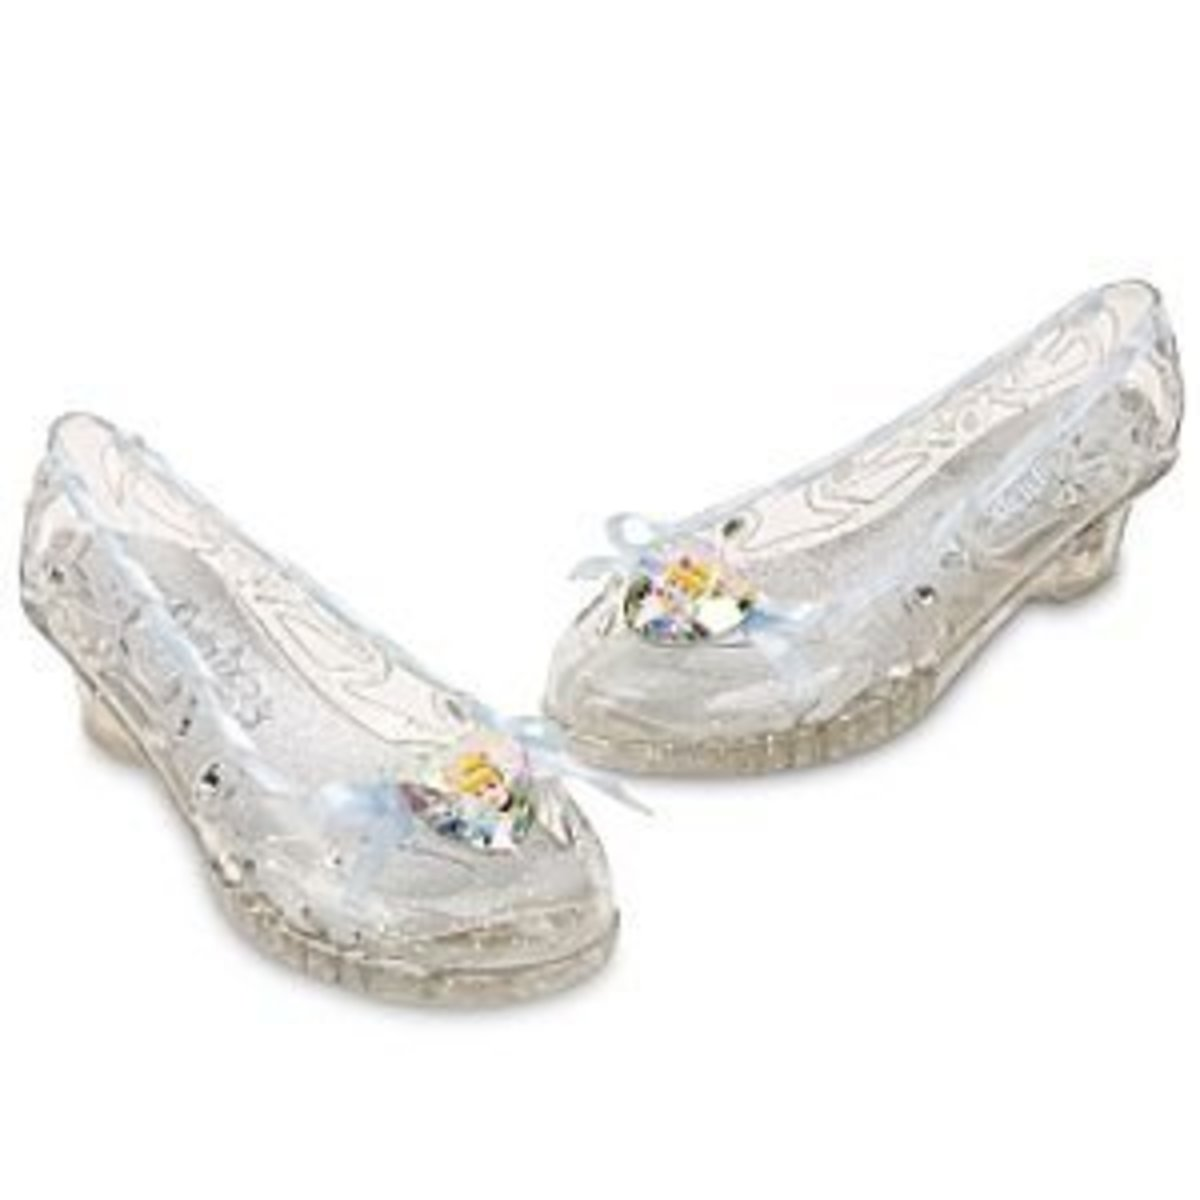 top-cinderella-glass-slippers